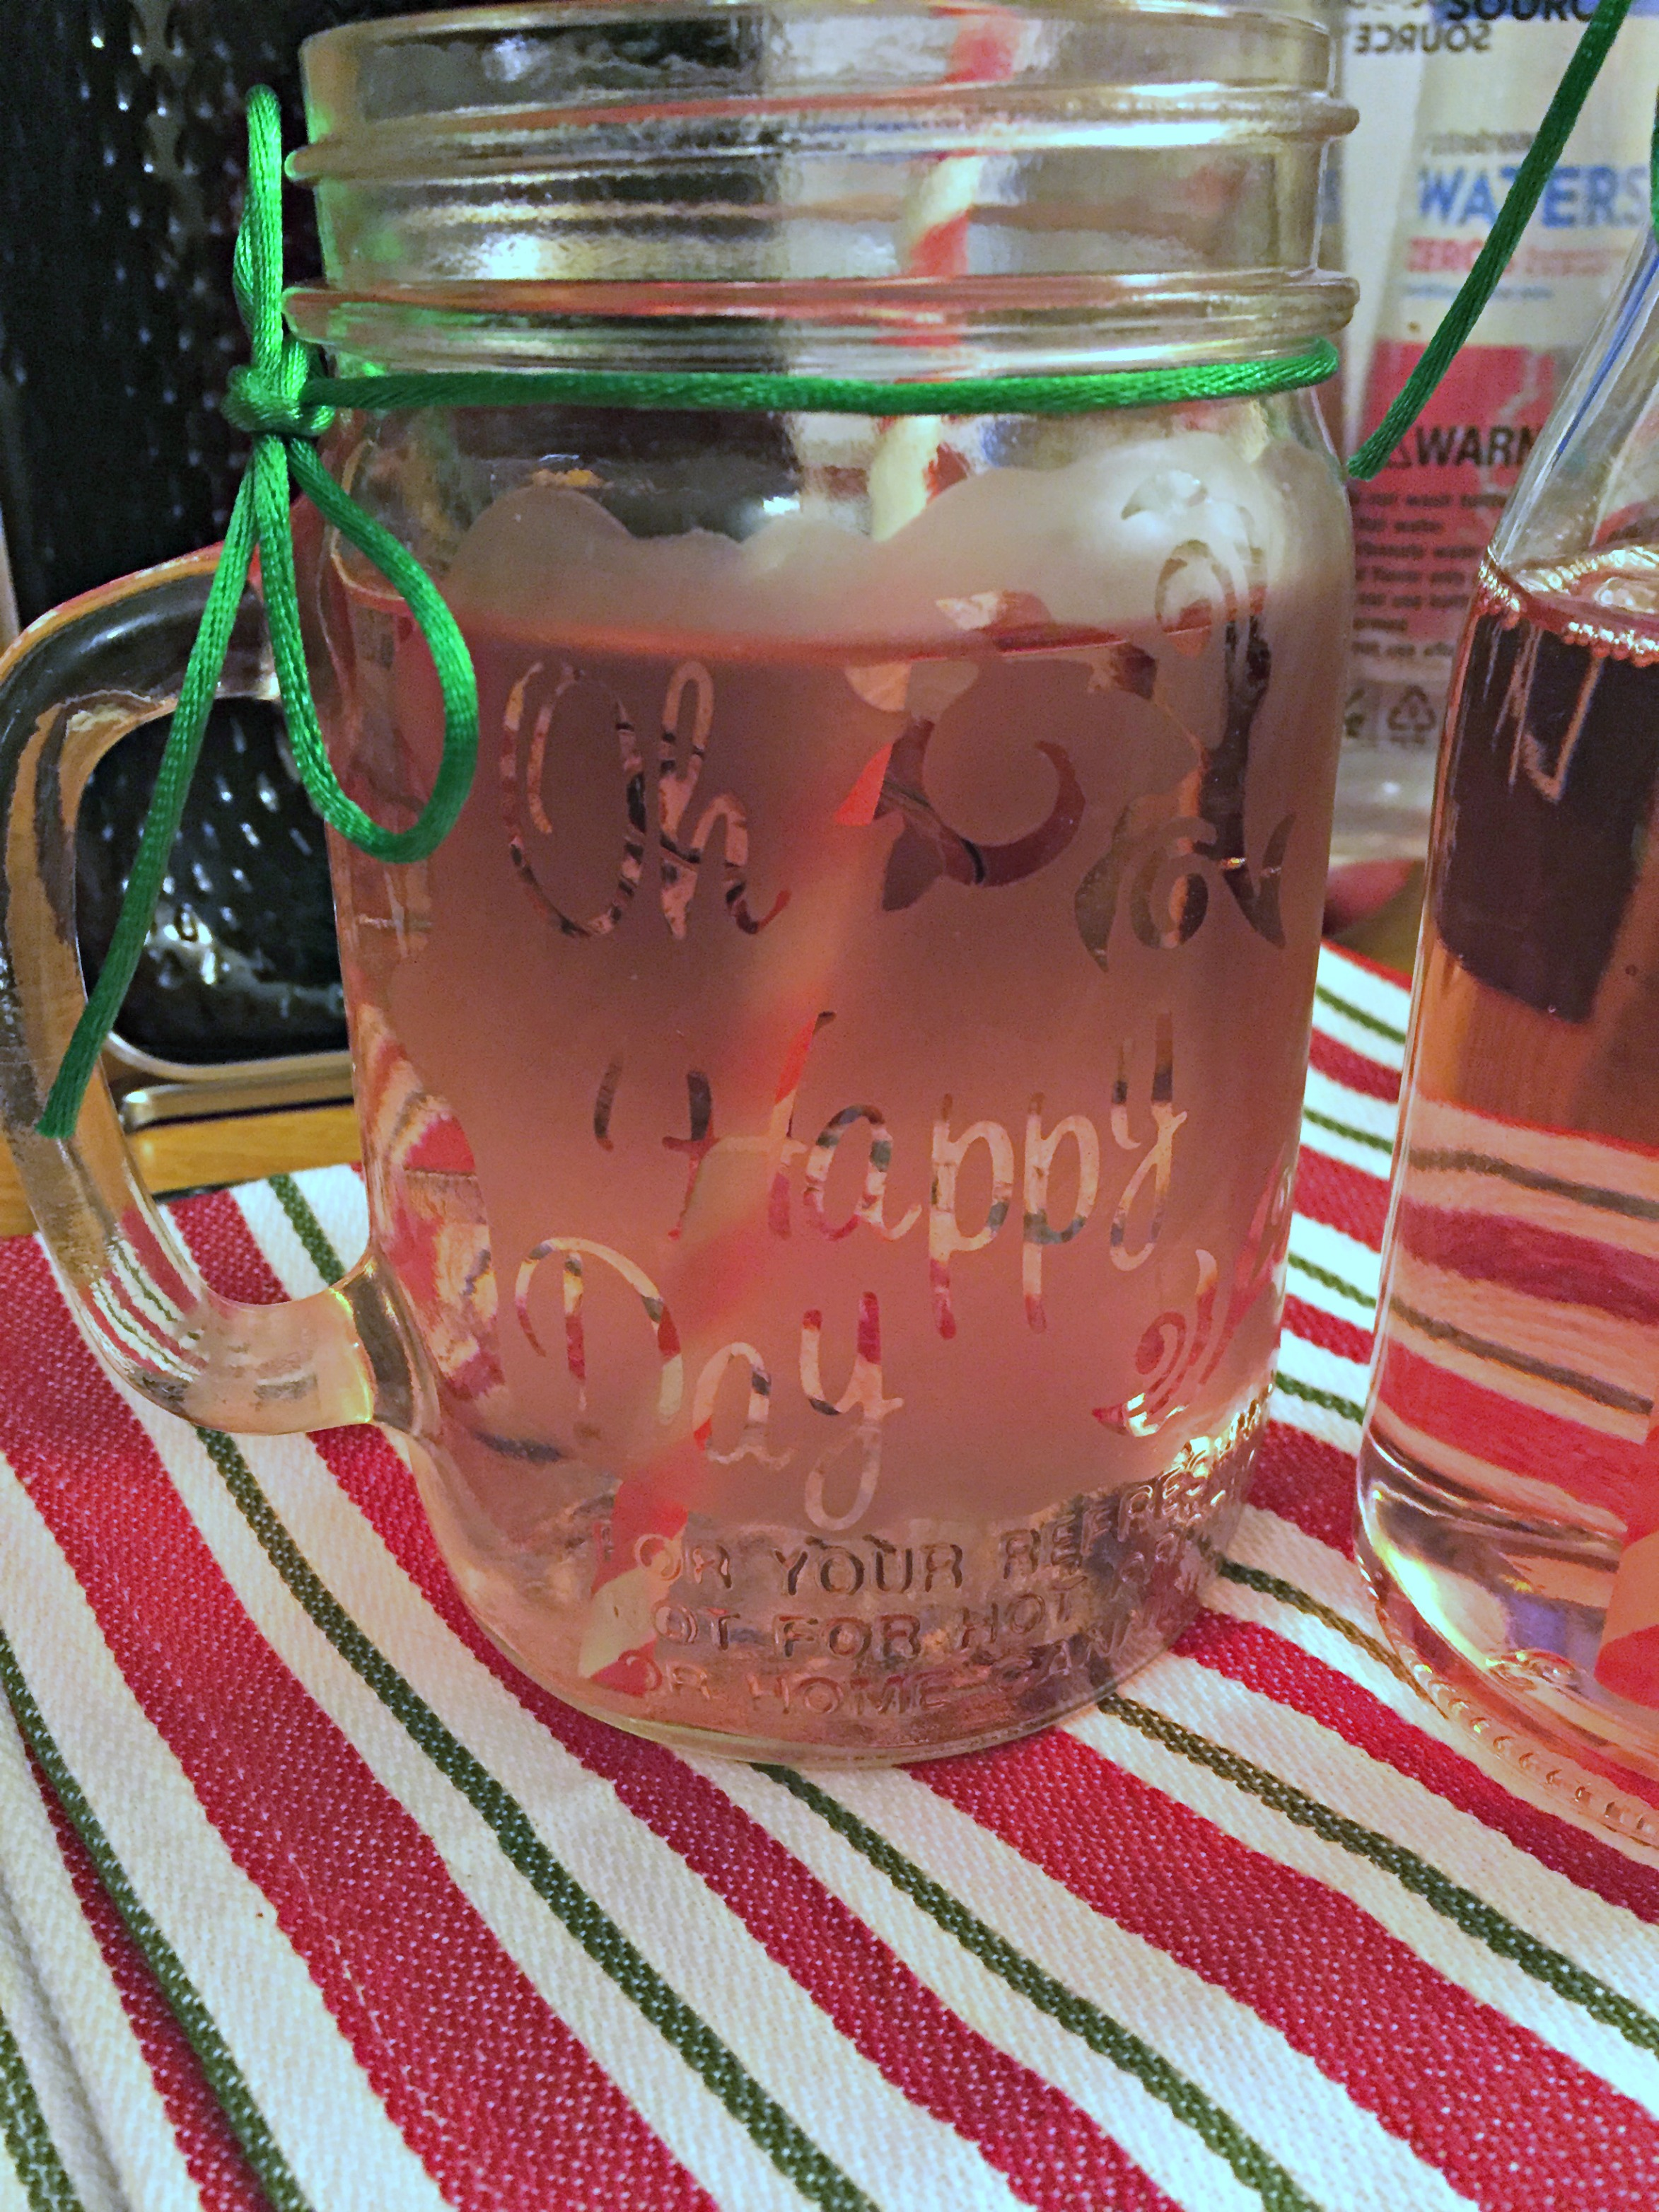 Make your own Personalized Glasses #WaterMadeExciting #CollectiveBias